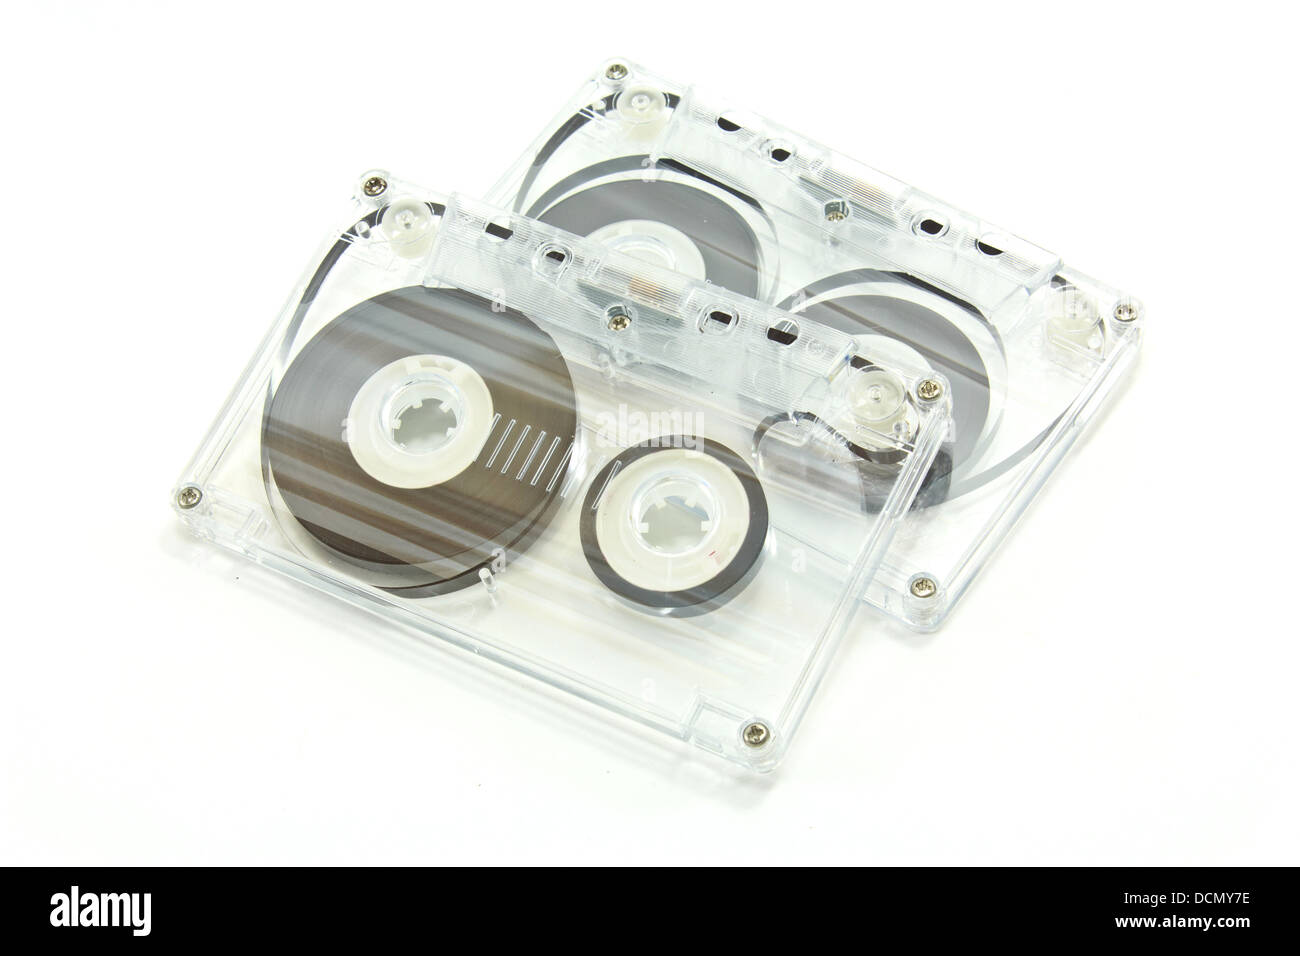 Two transparent cassete tape isolate on white background - Stock Image